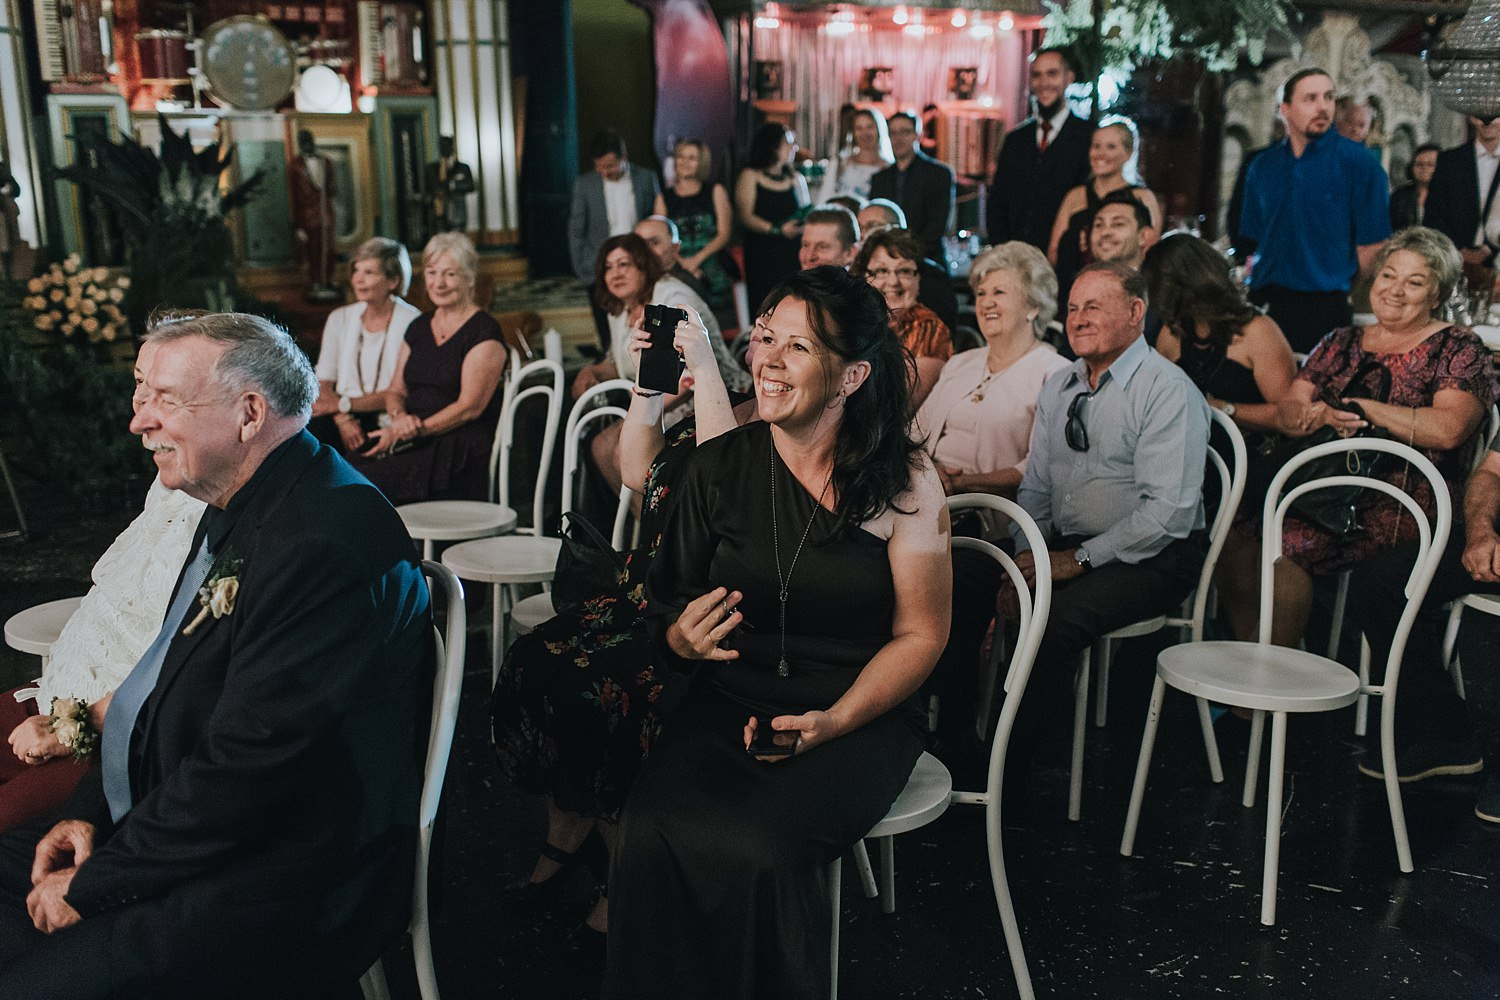 guests excited to see the groom before wedding ceremony